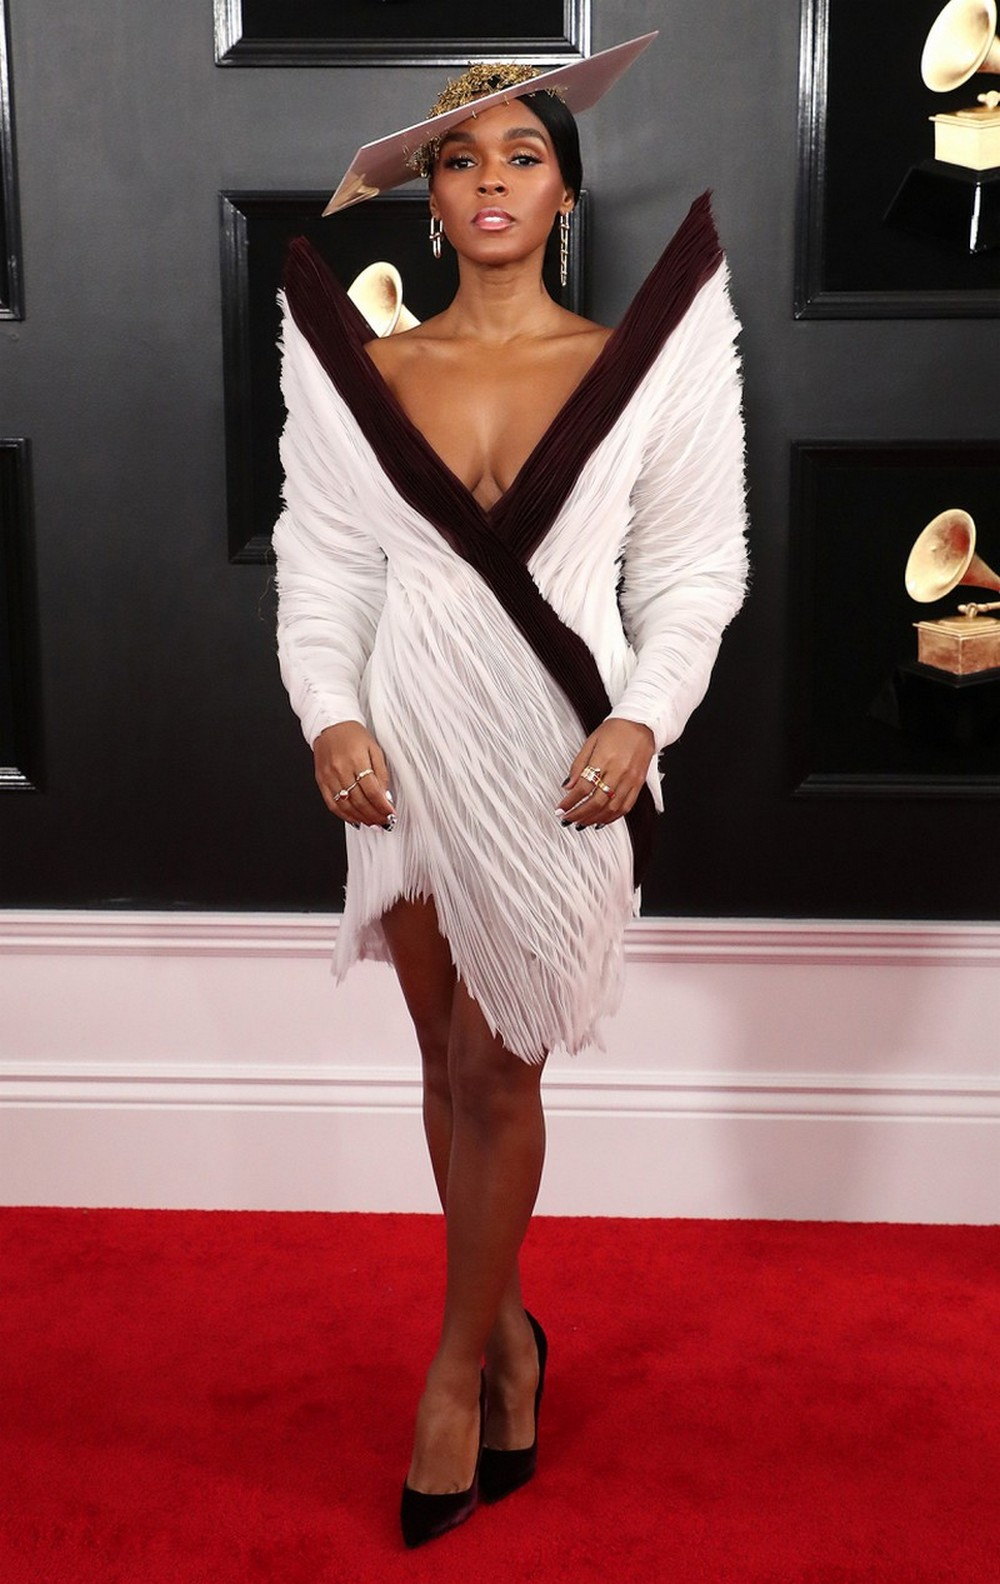 2019 grammys CovetED Reveals The Best High-Fashion Looks Of The 2019 Grammys CovetED Reveals The Best High Fashion Looks Of The 2019 Grammys 2